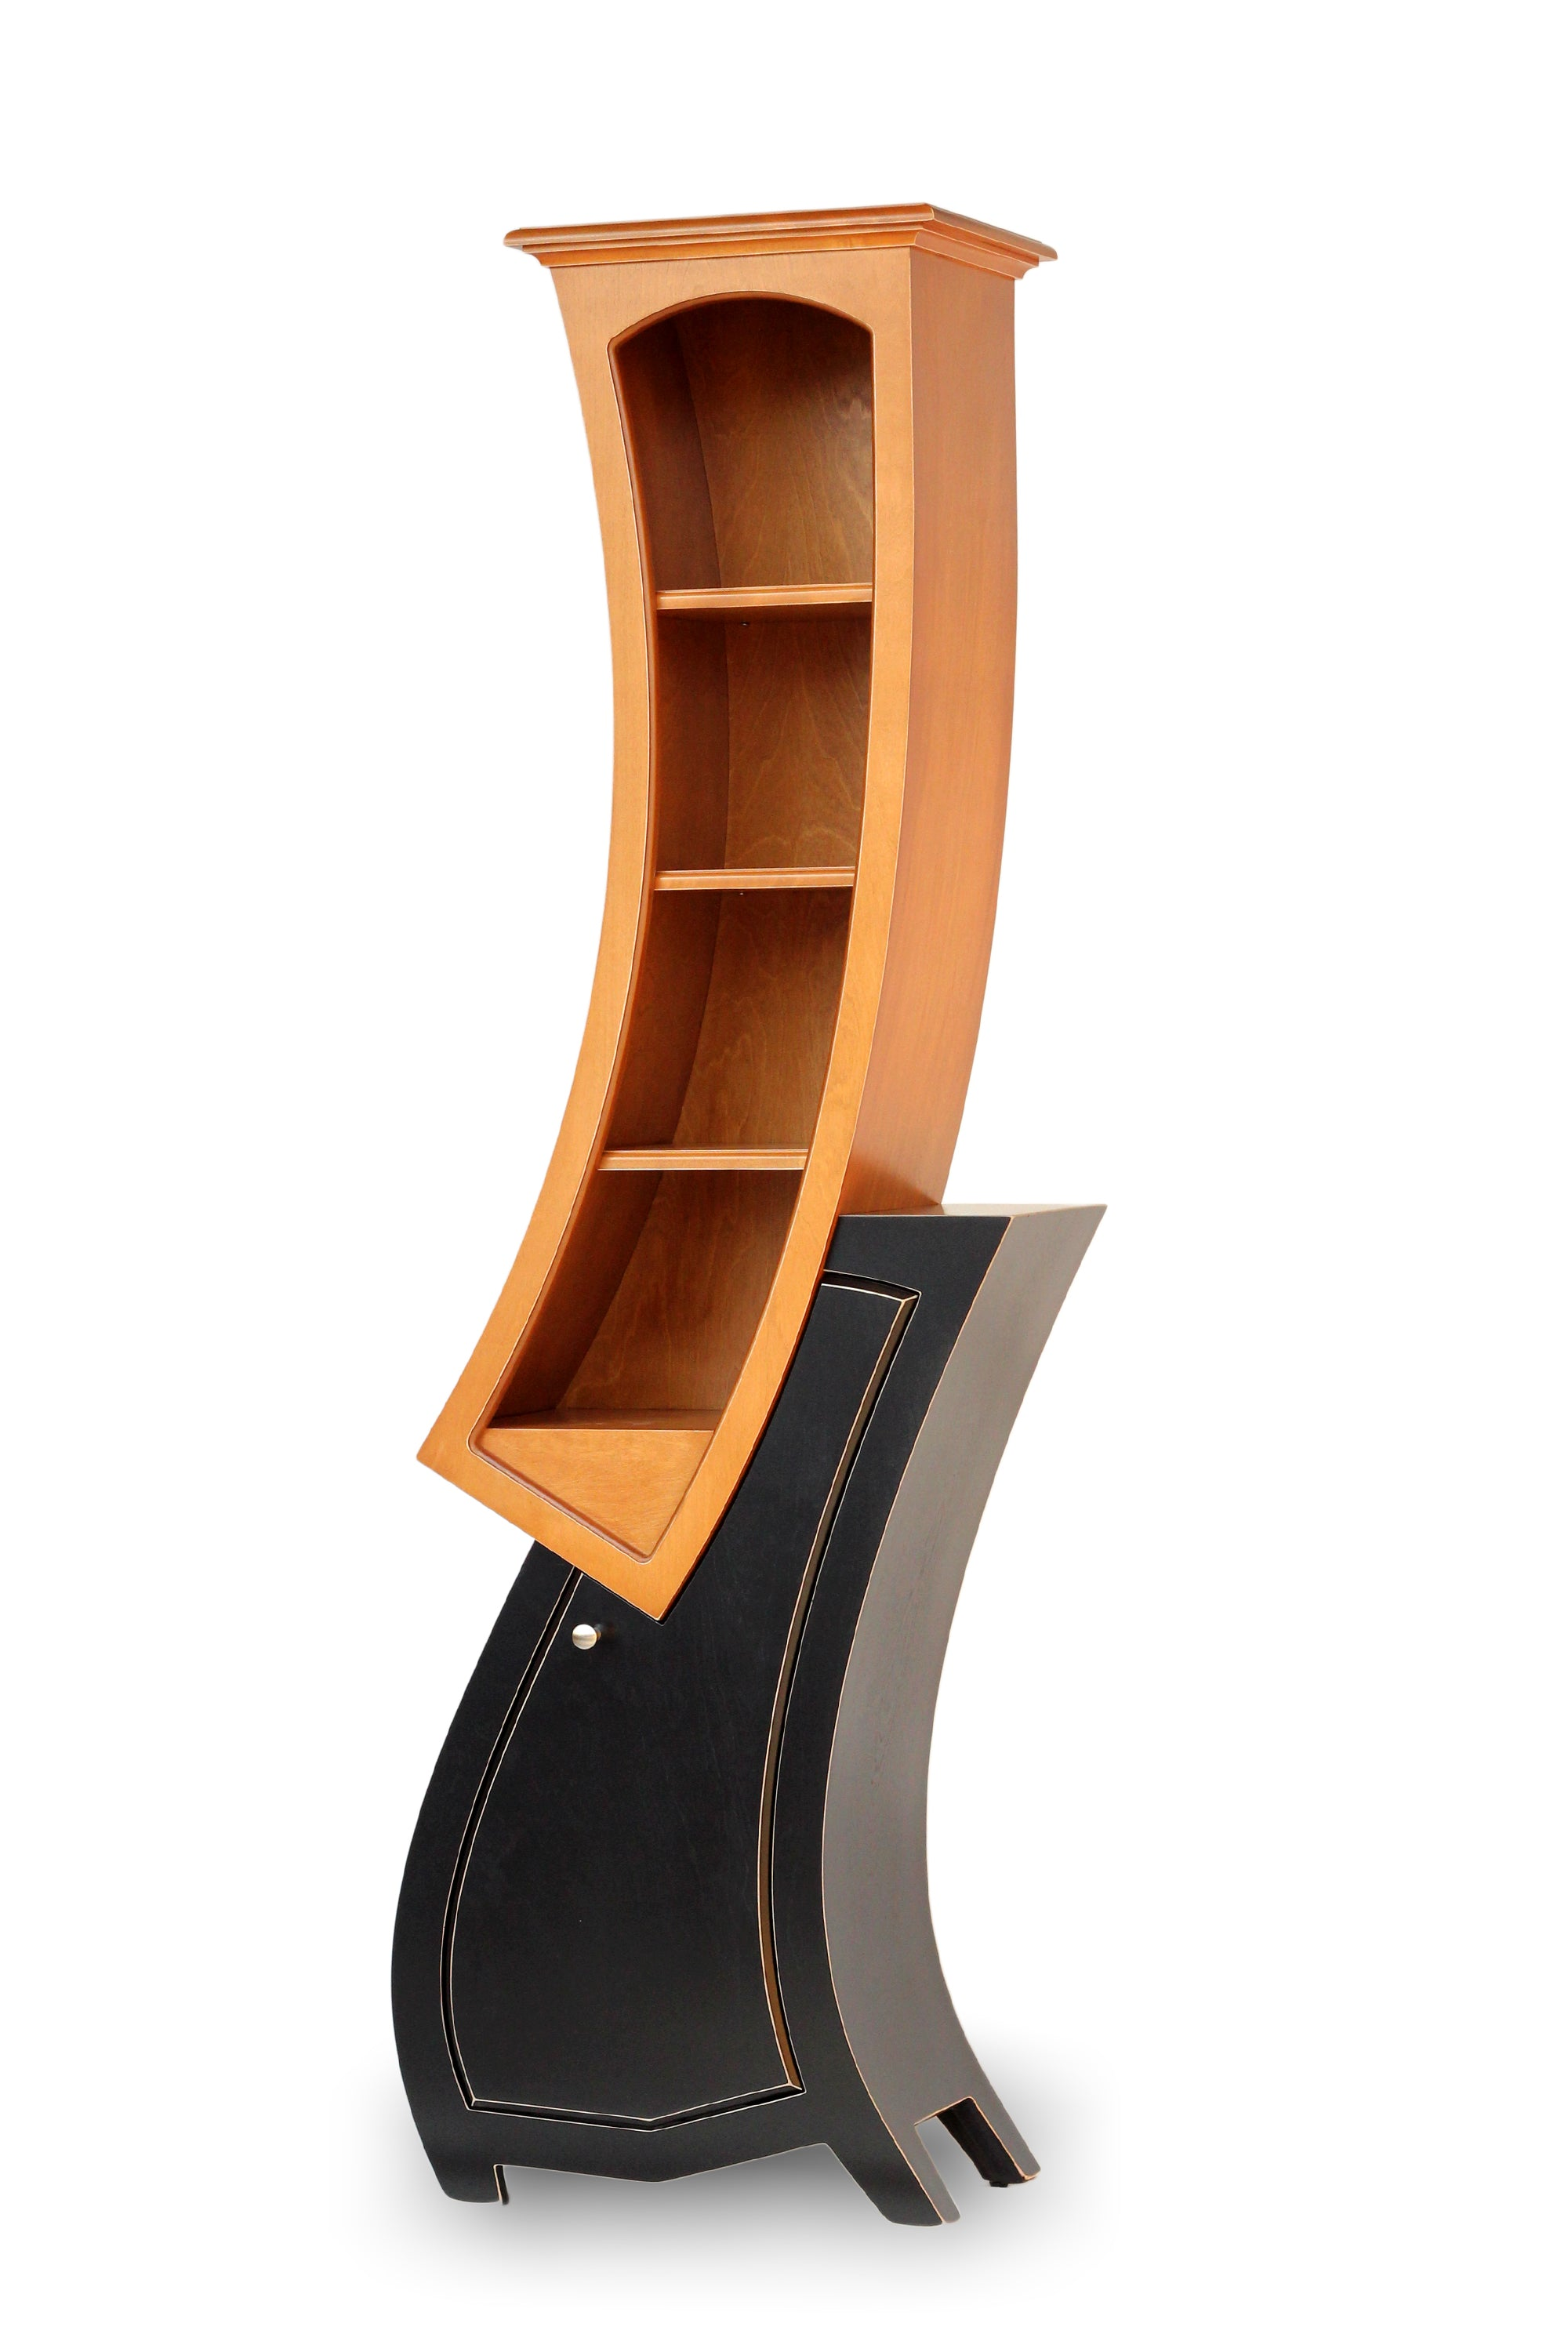 Best Way To Dust Furniture Concept sculptural furniture  stacked cabinet no.7 – dust furniture*